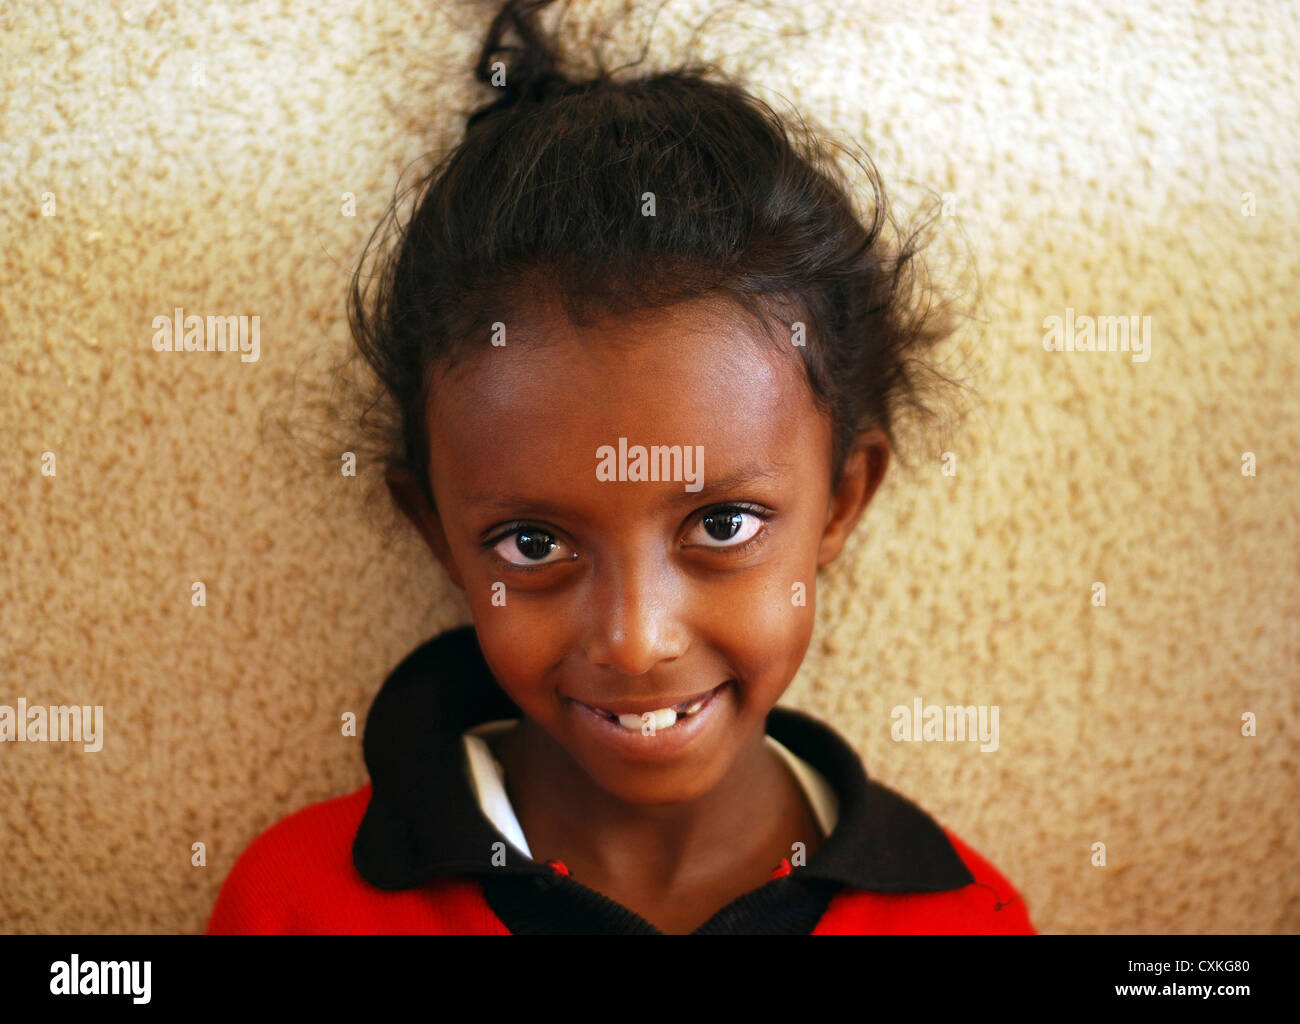 Eritrea, Asmara, close-up portrait of an African school girl smiling against wall. (MR) Stock Photo